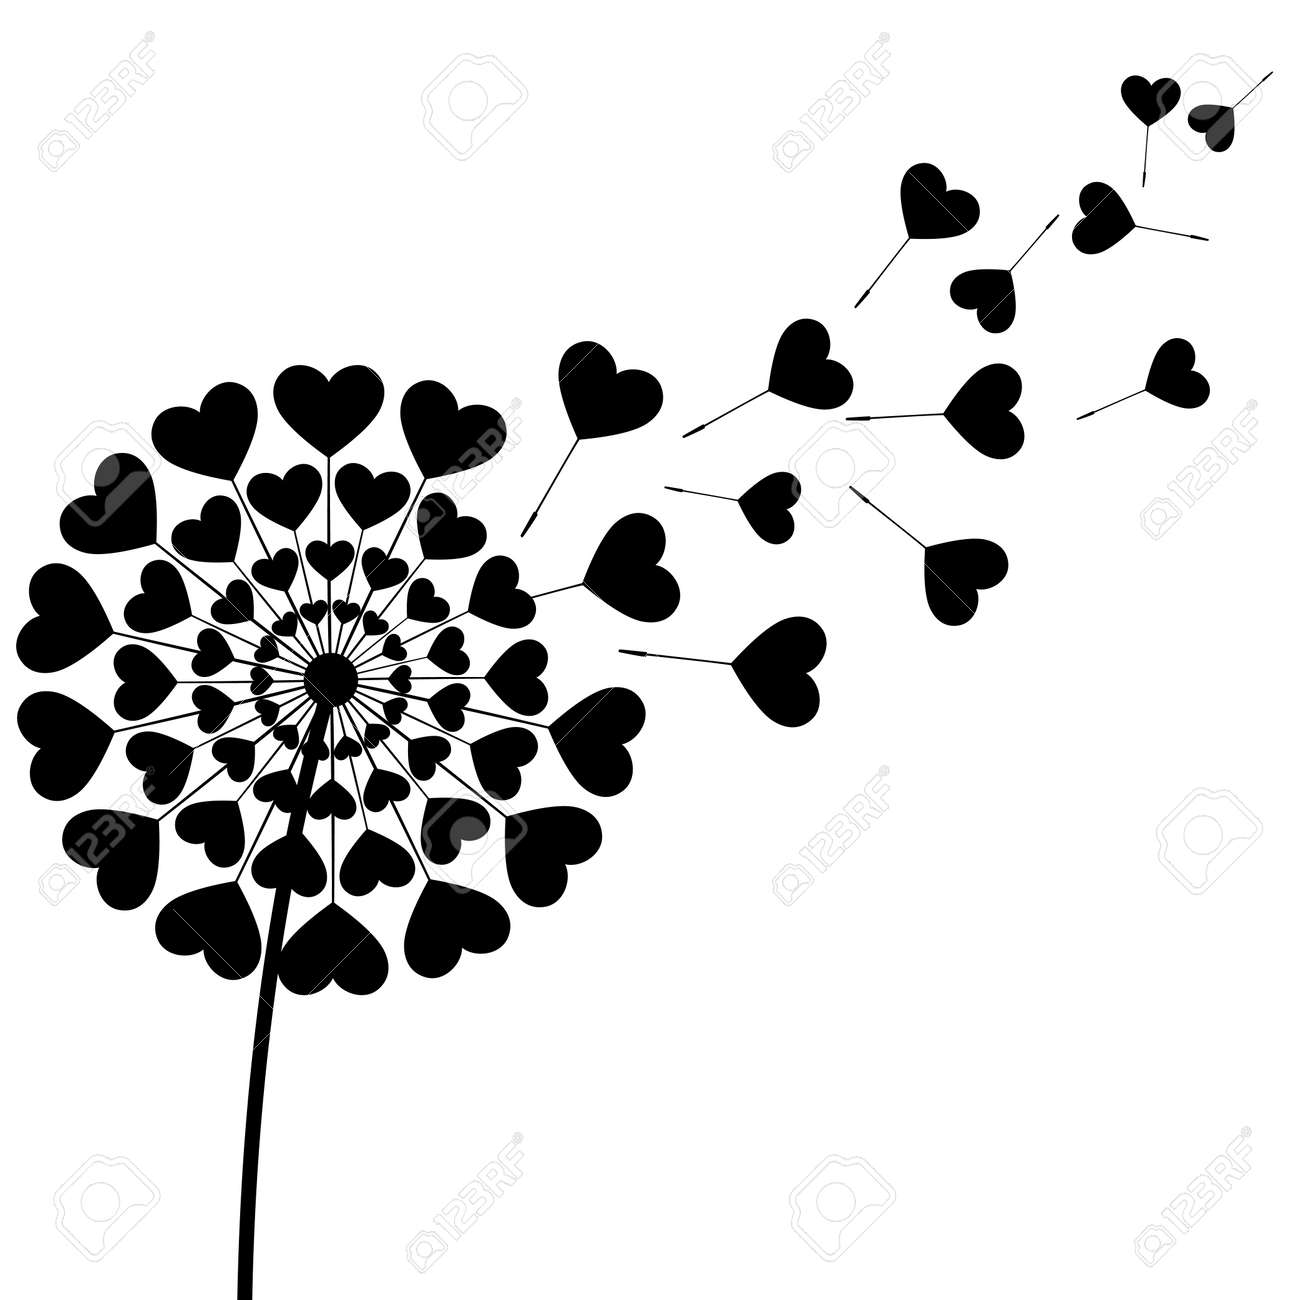 Beautiful Stylized Black Dandelion Blowing Isolated On White